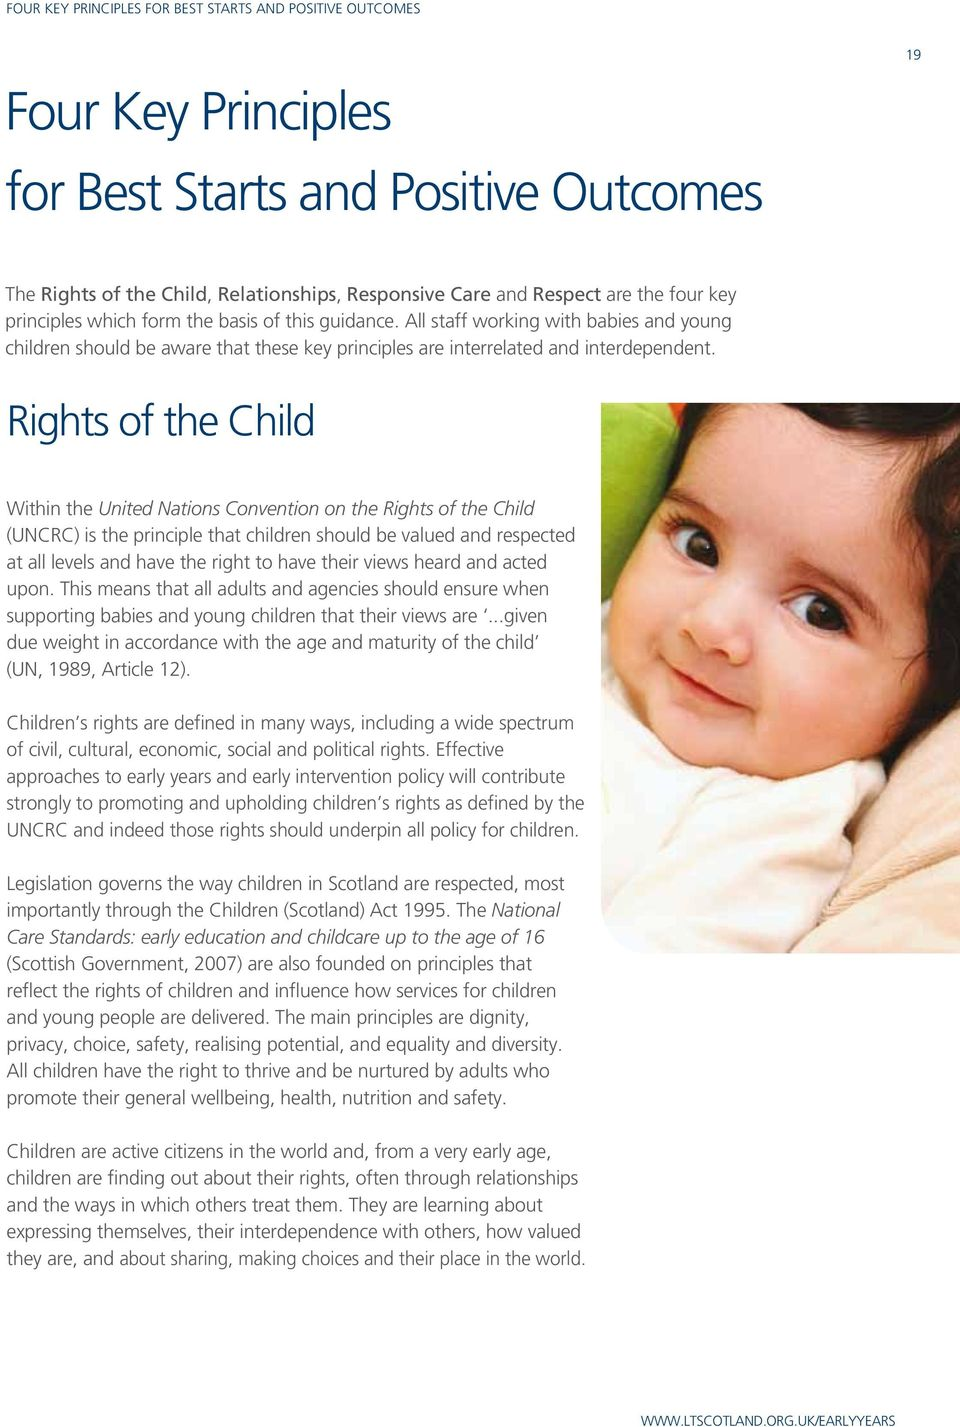 Rights of the Child Within the United Nations Convention on the Rights of the Child (UNCRC) is the principle that children should be valued and respected at all levels and have the right to have